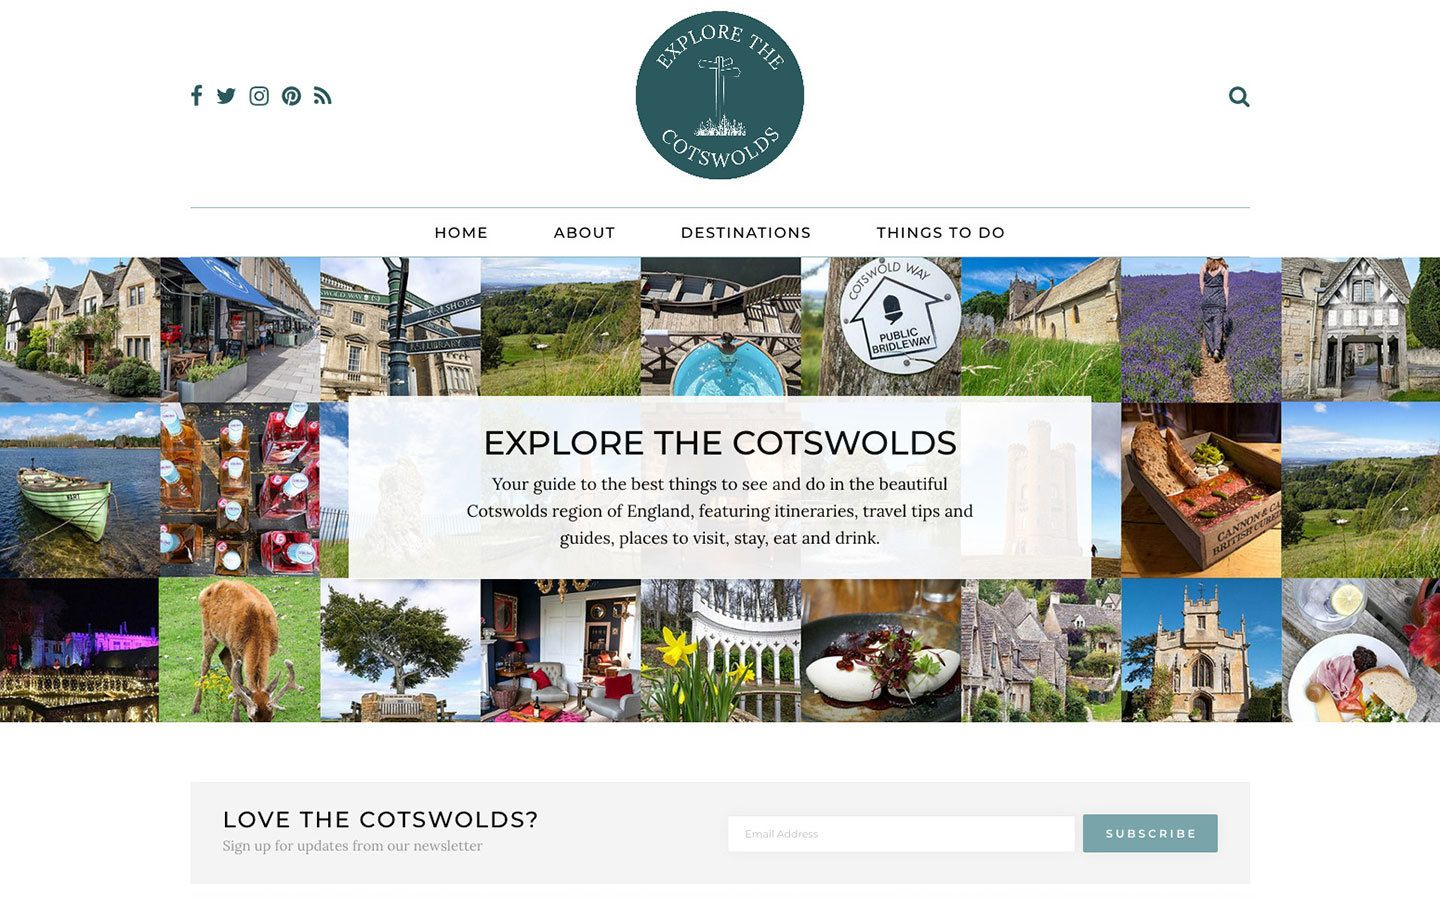 The homepage of the Explore the Cotswolds website